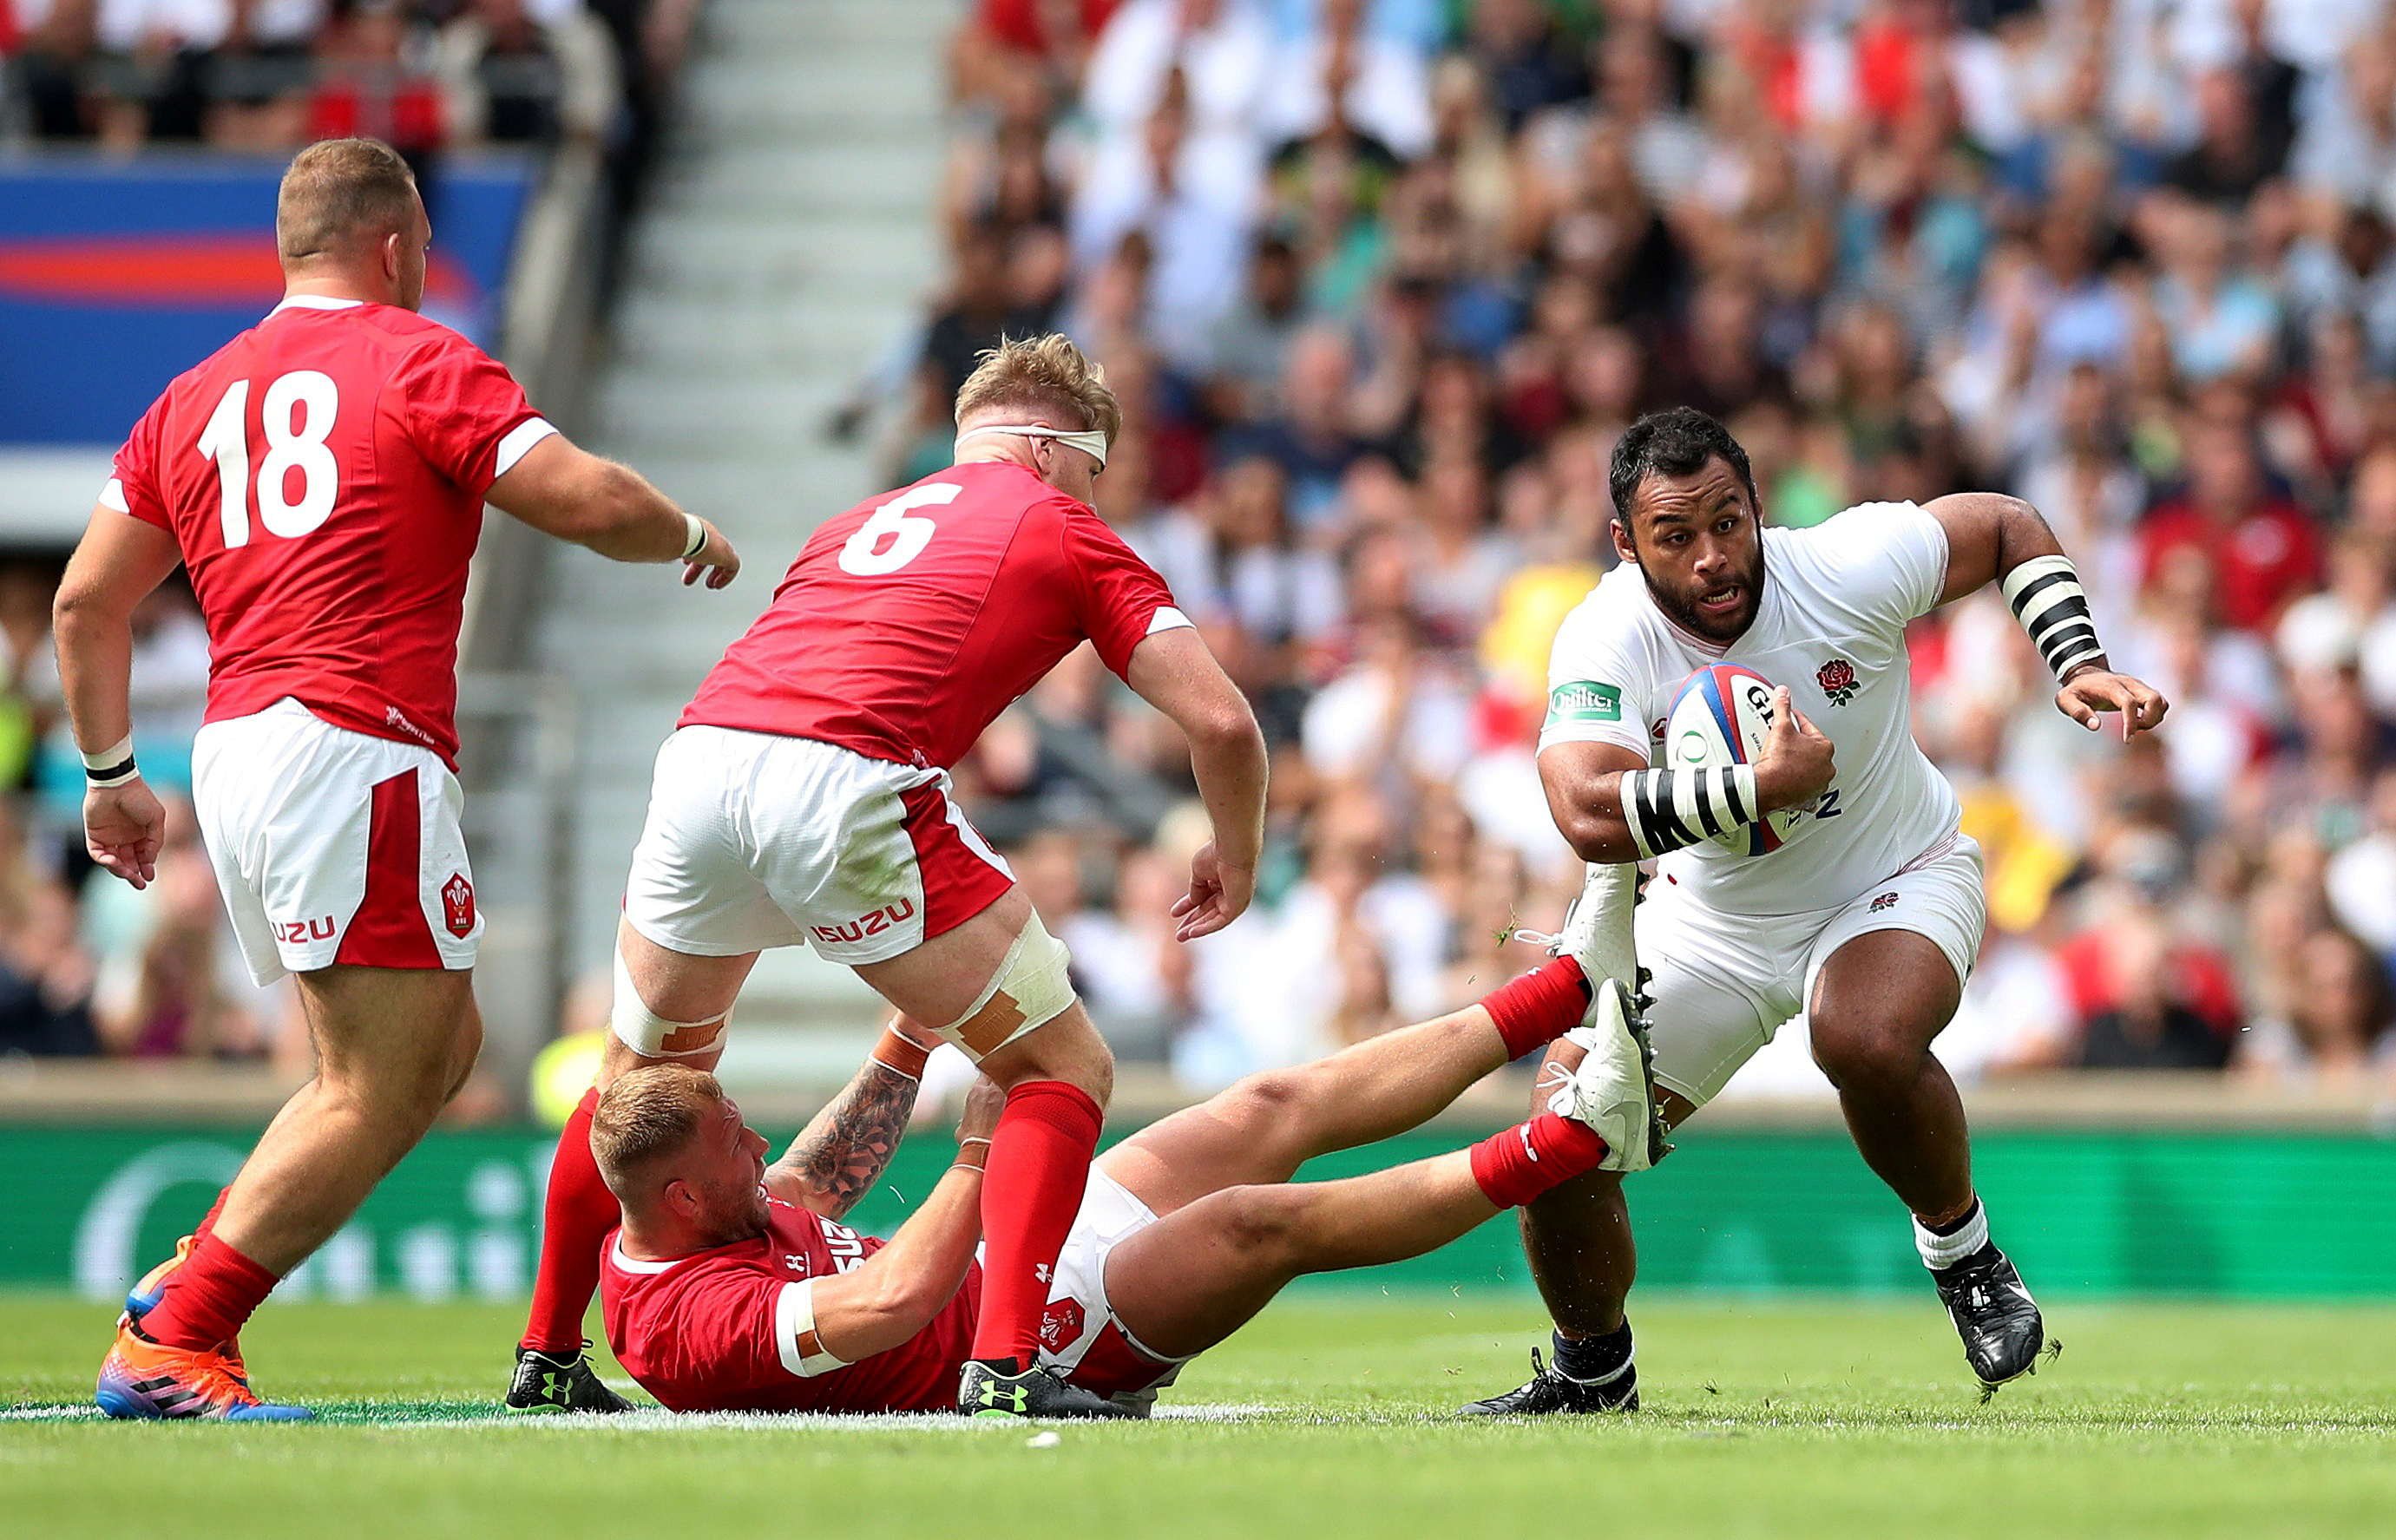 Rugby - Rugby : Pays de Galles - Angleterre en direct